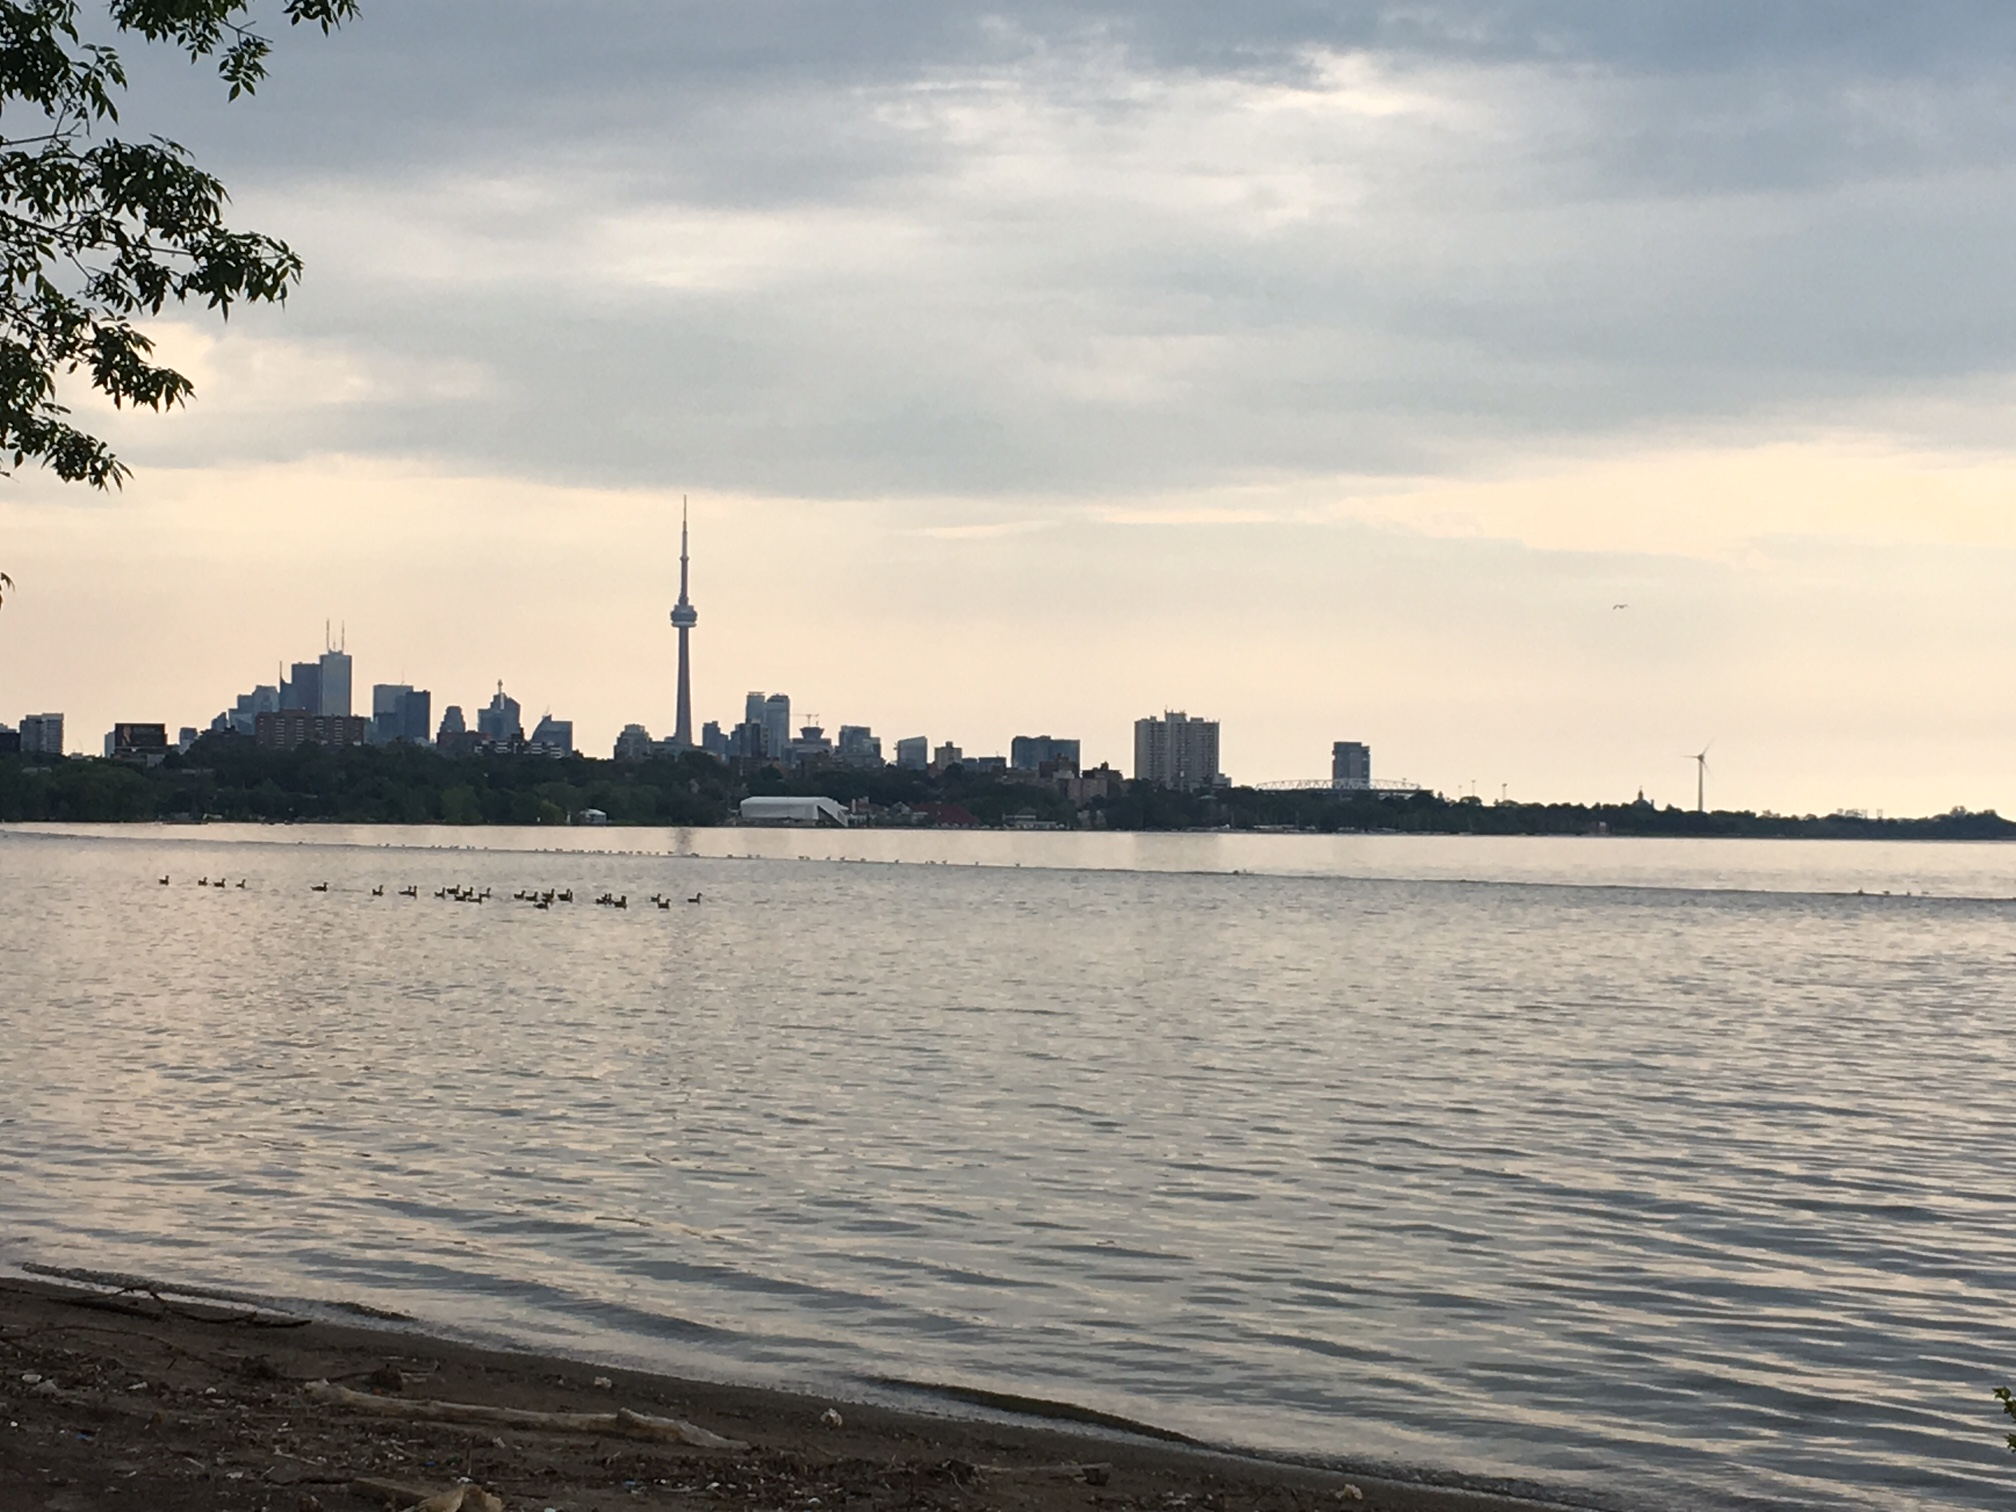 City skyline.   Still in the West End, looking east towards the city over Lake Ontario. People take their dogs swimming here.